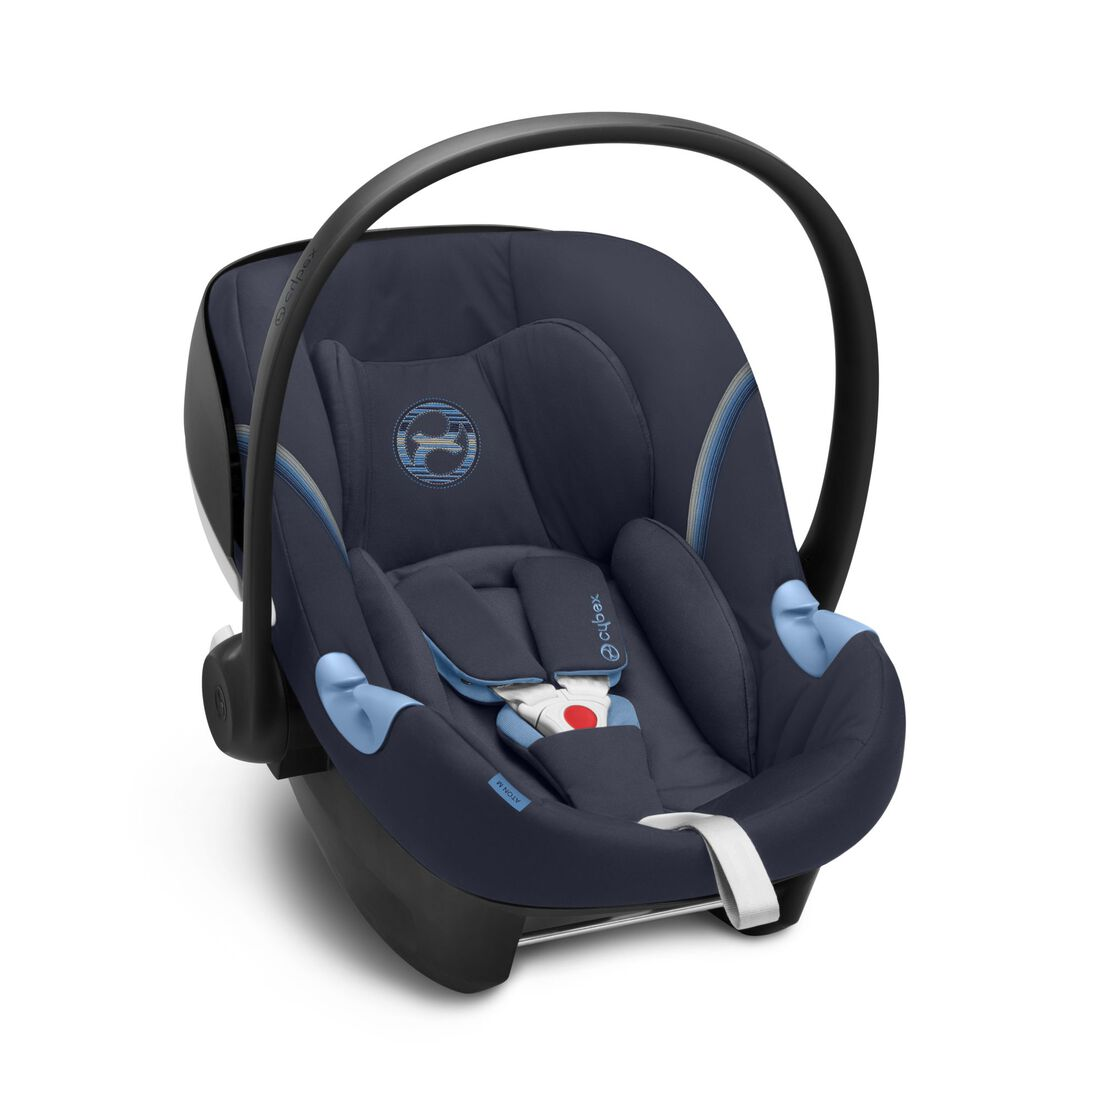 CYBEX Aton M i-Size - Navy Blue in Navy Blue large Bild 2